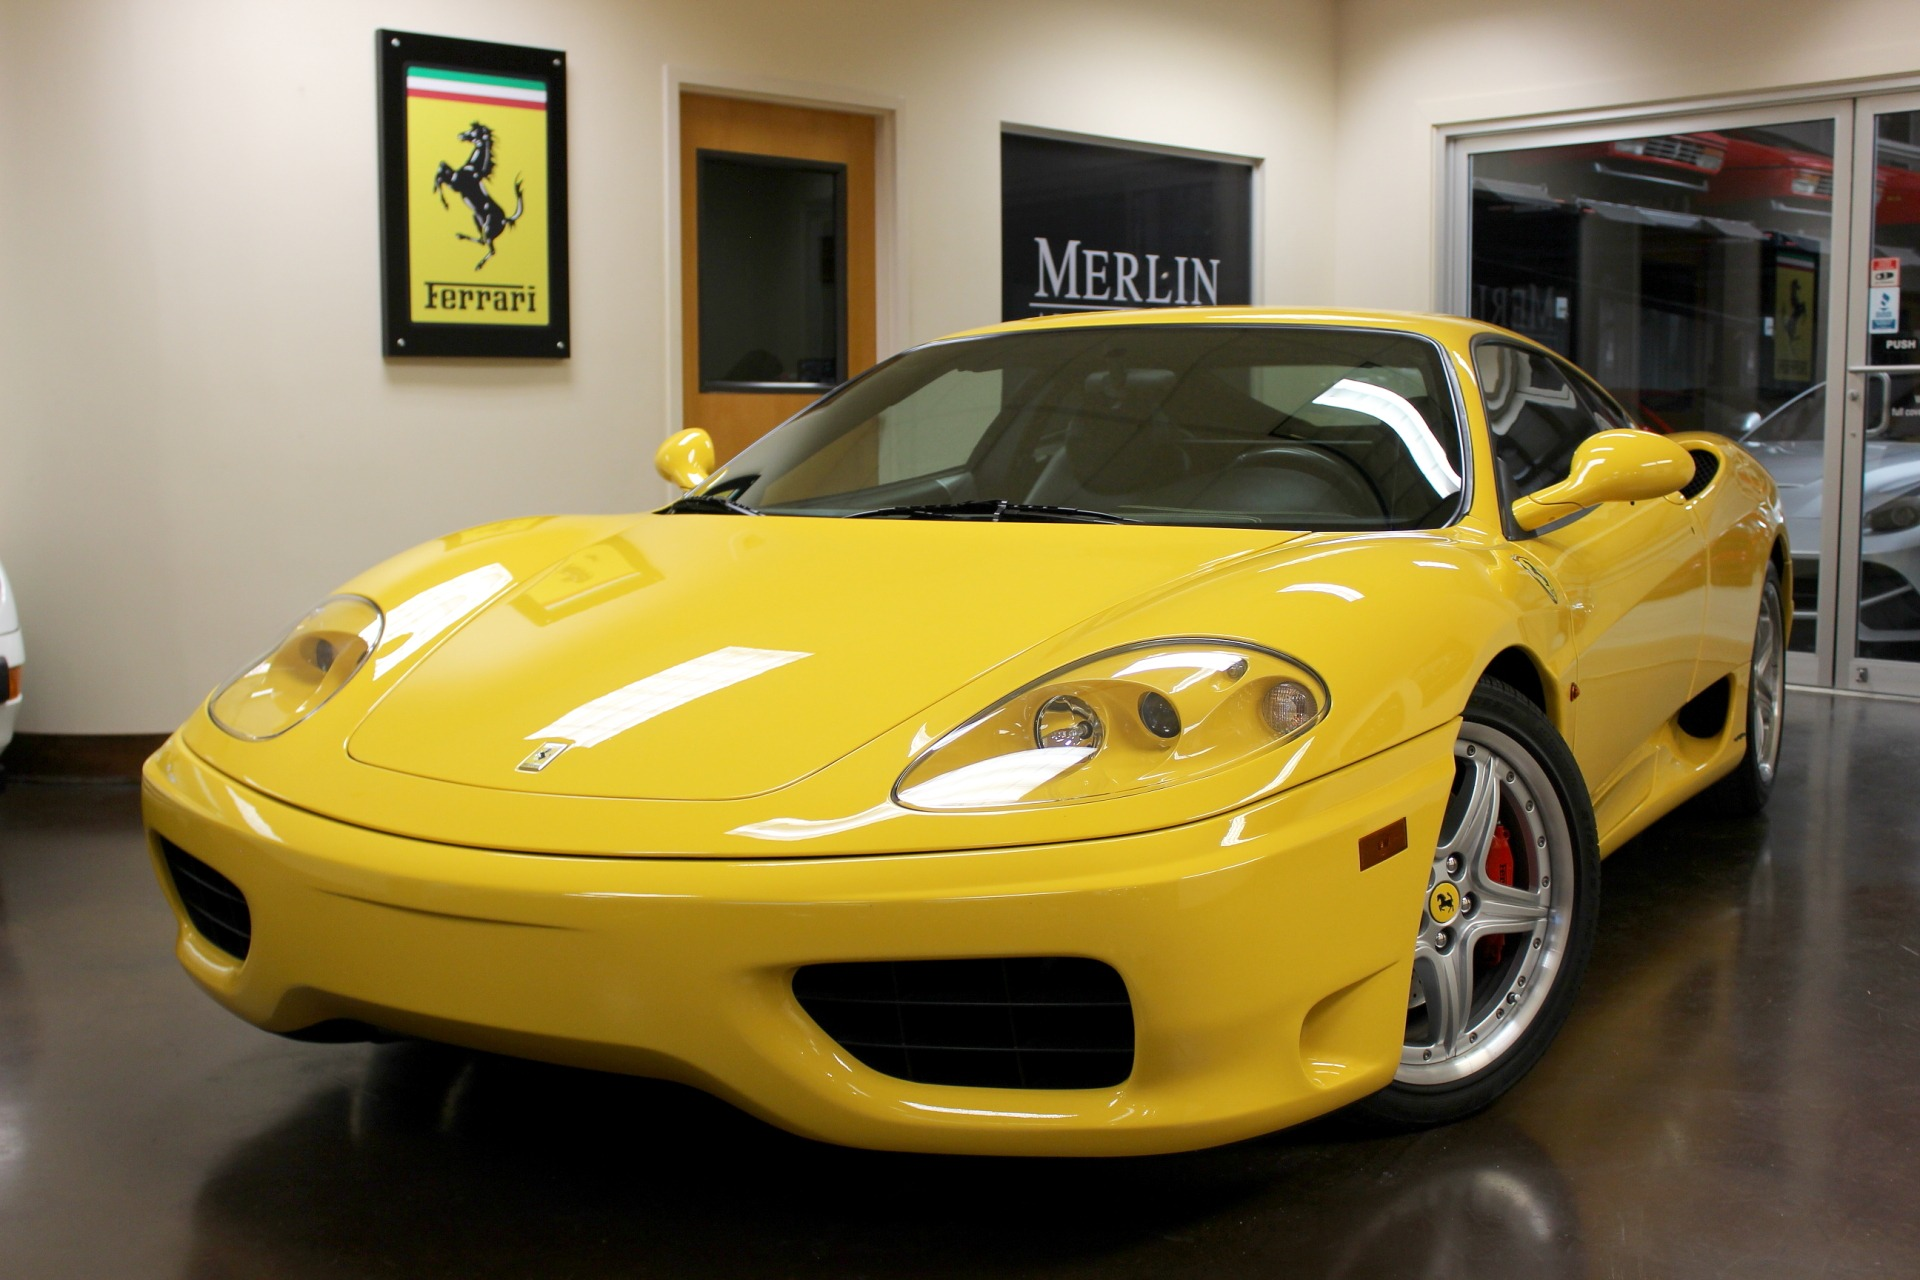 Where Can You Buy A Certified Pre-Owned Ferrari?